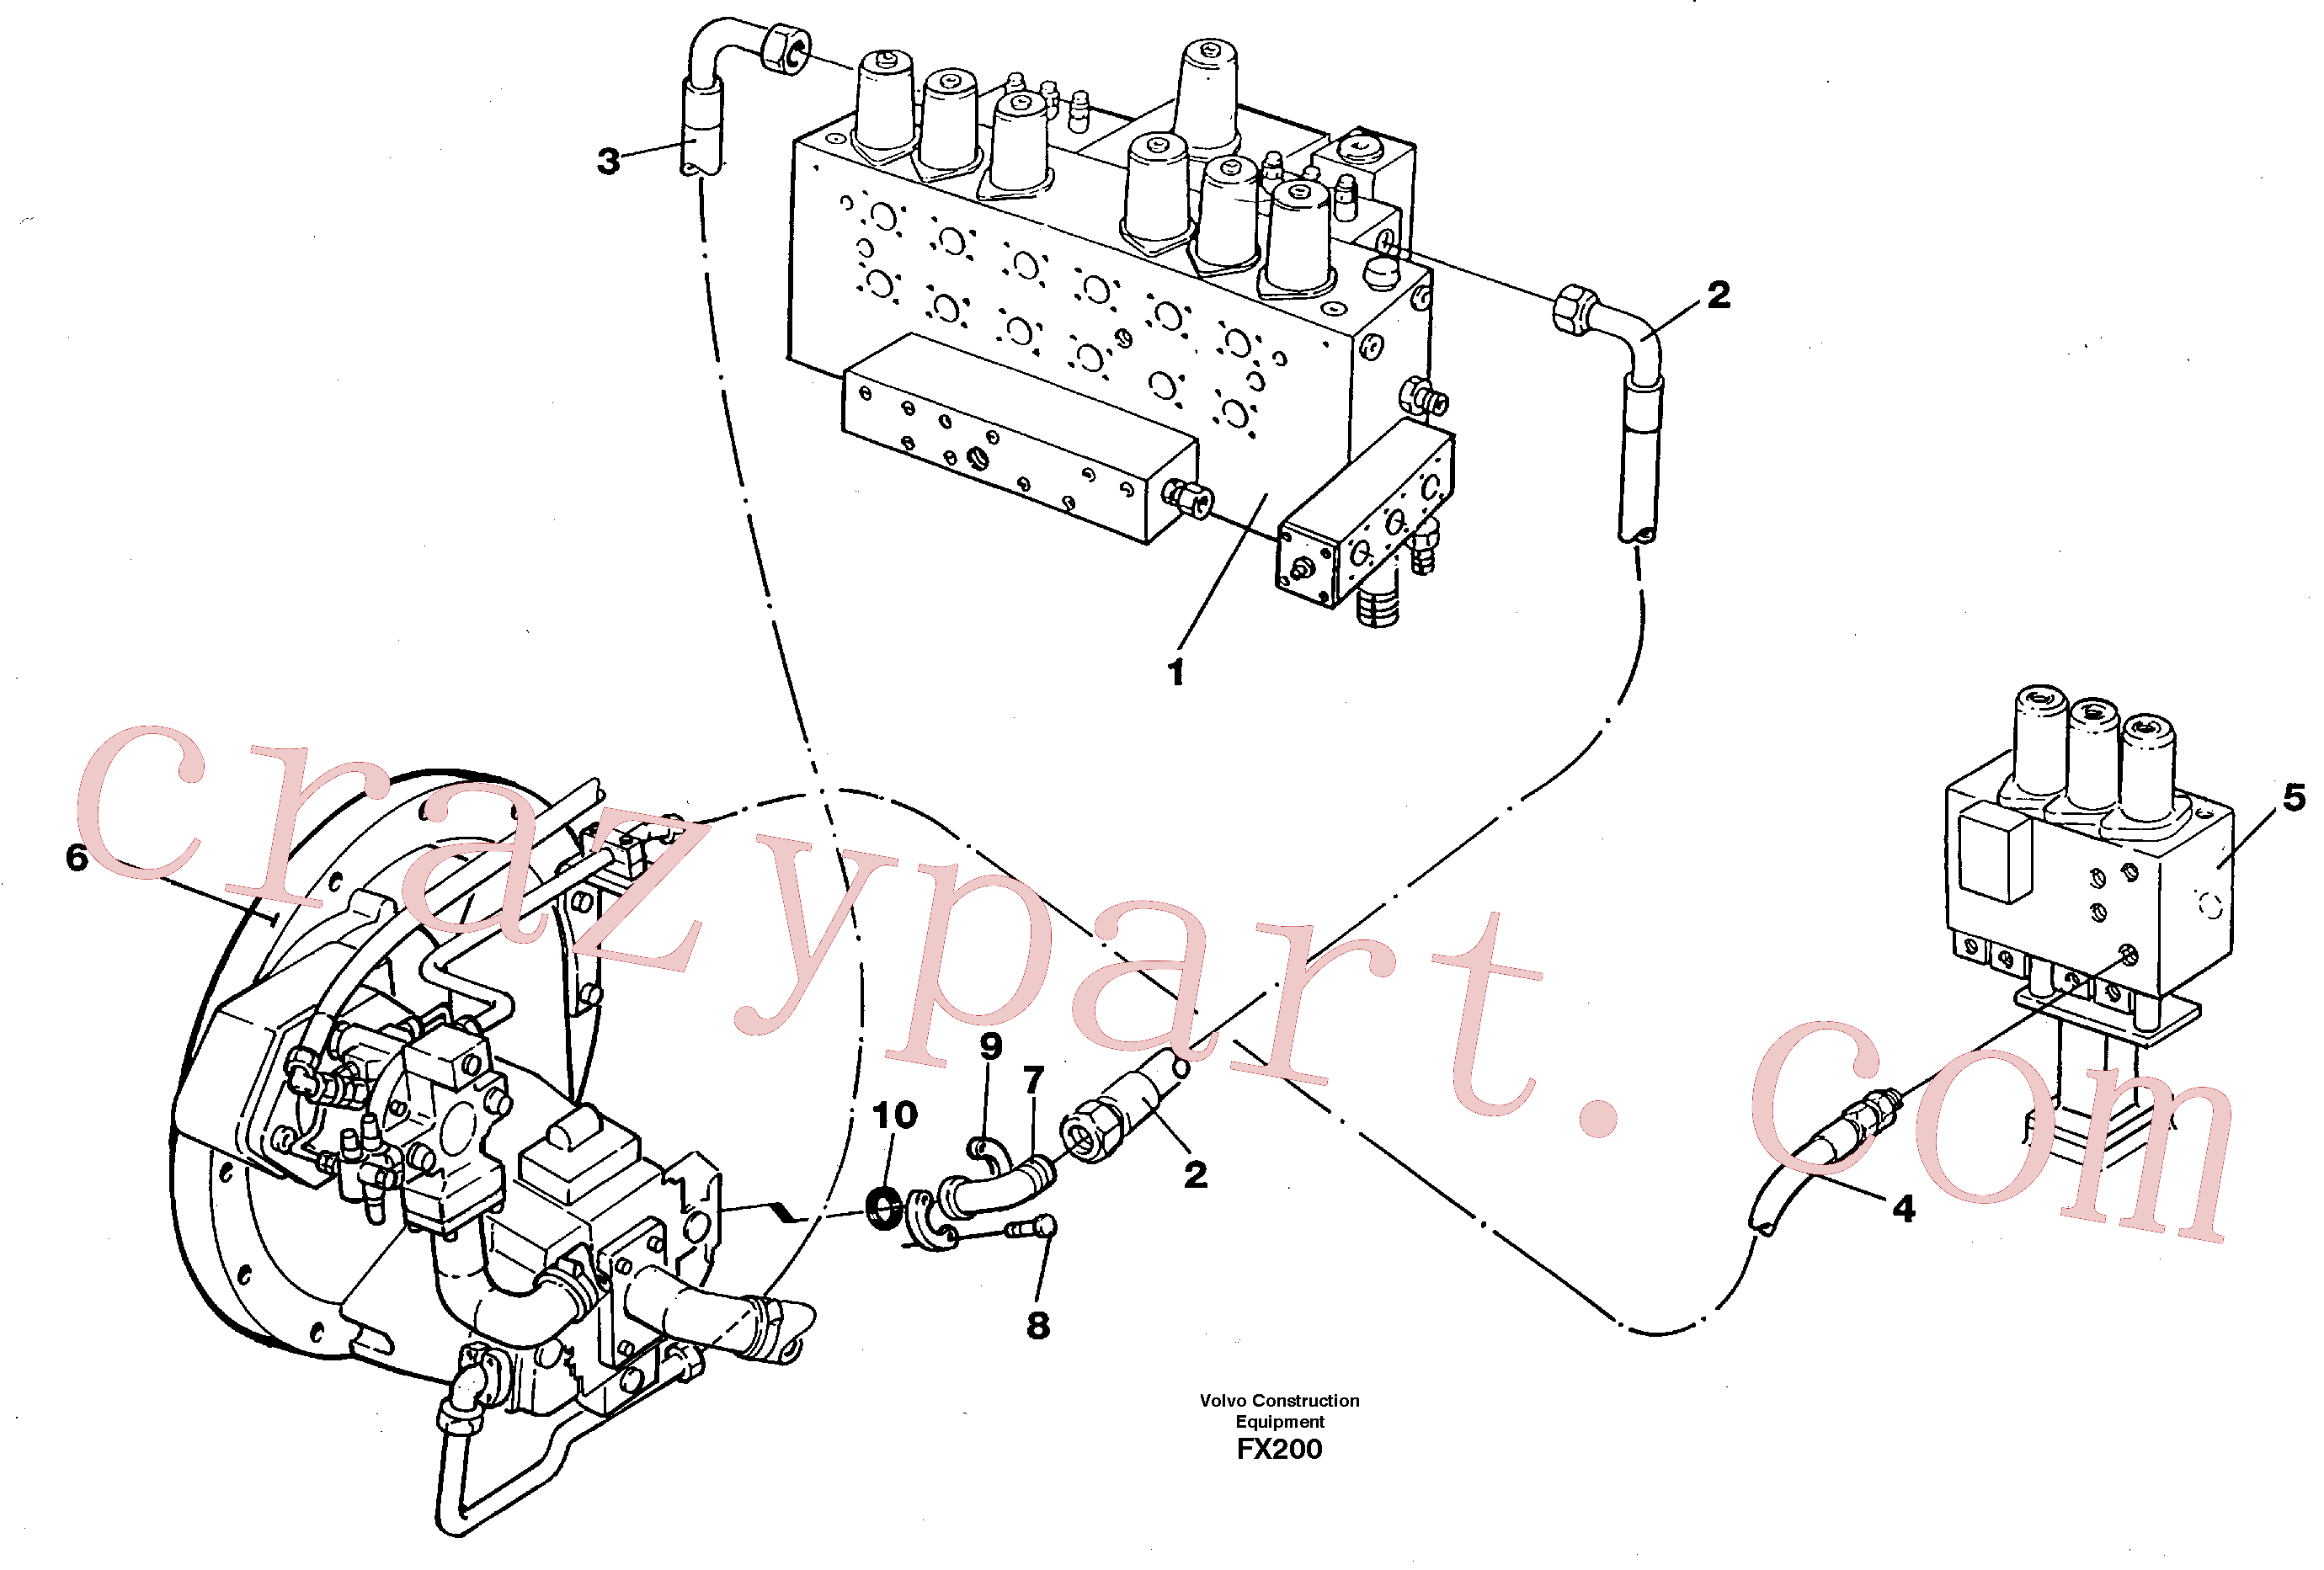 VOE14267482 for Volvo Hydraulic system, feed line(FX200 assembly)